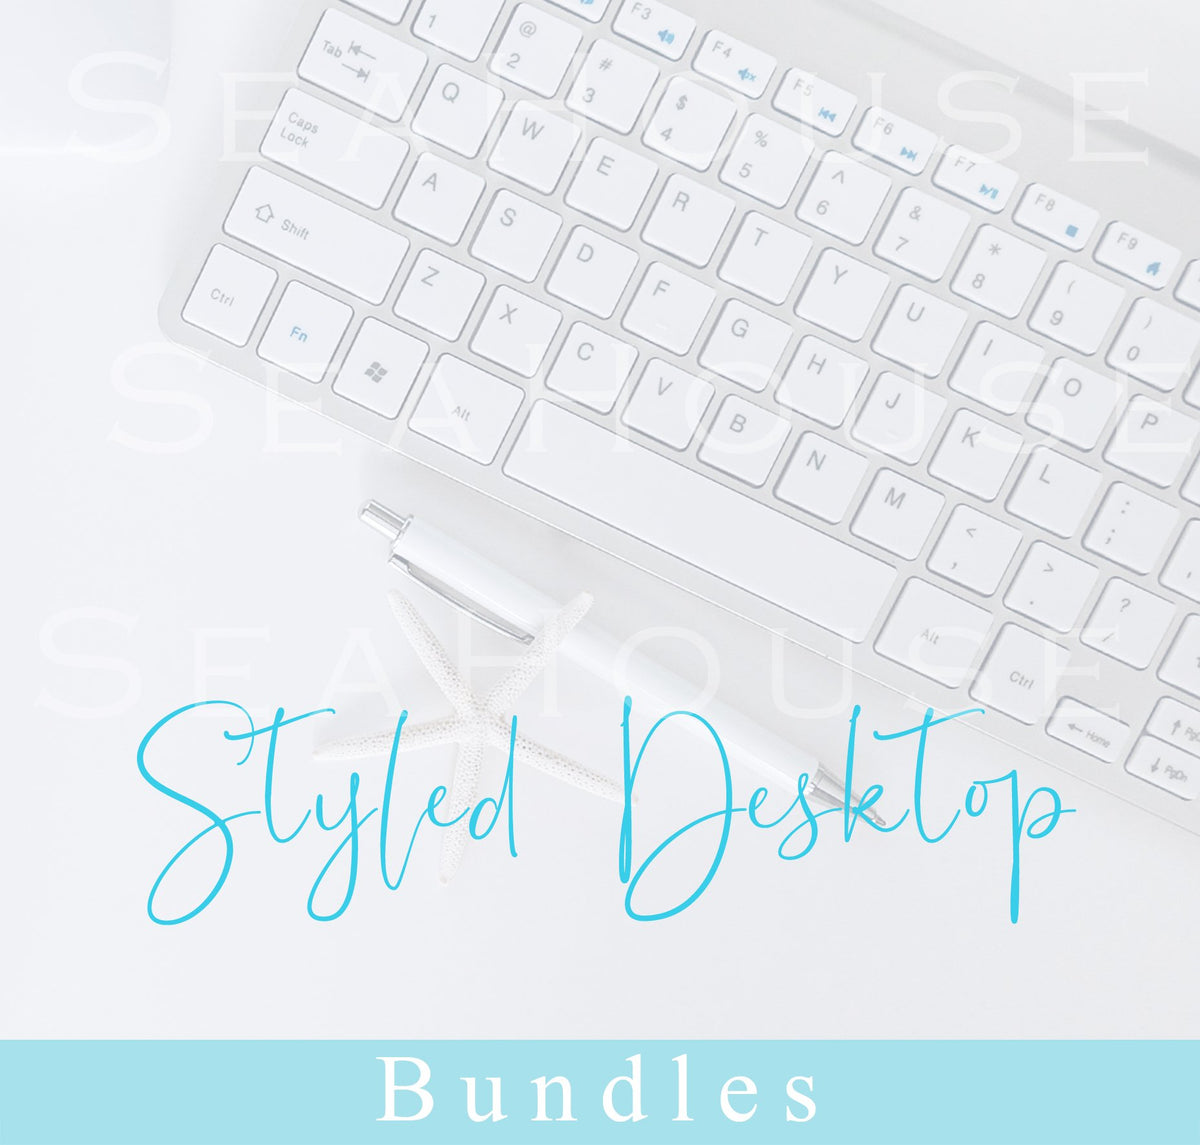 Styled Desktop Bundles Collection Image